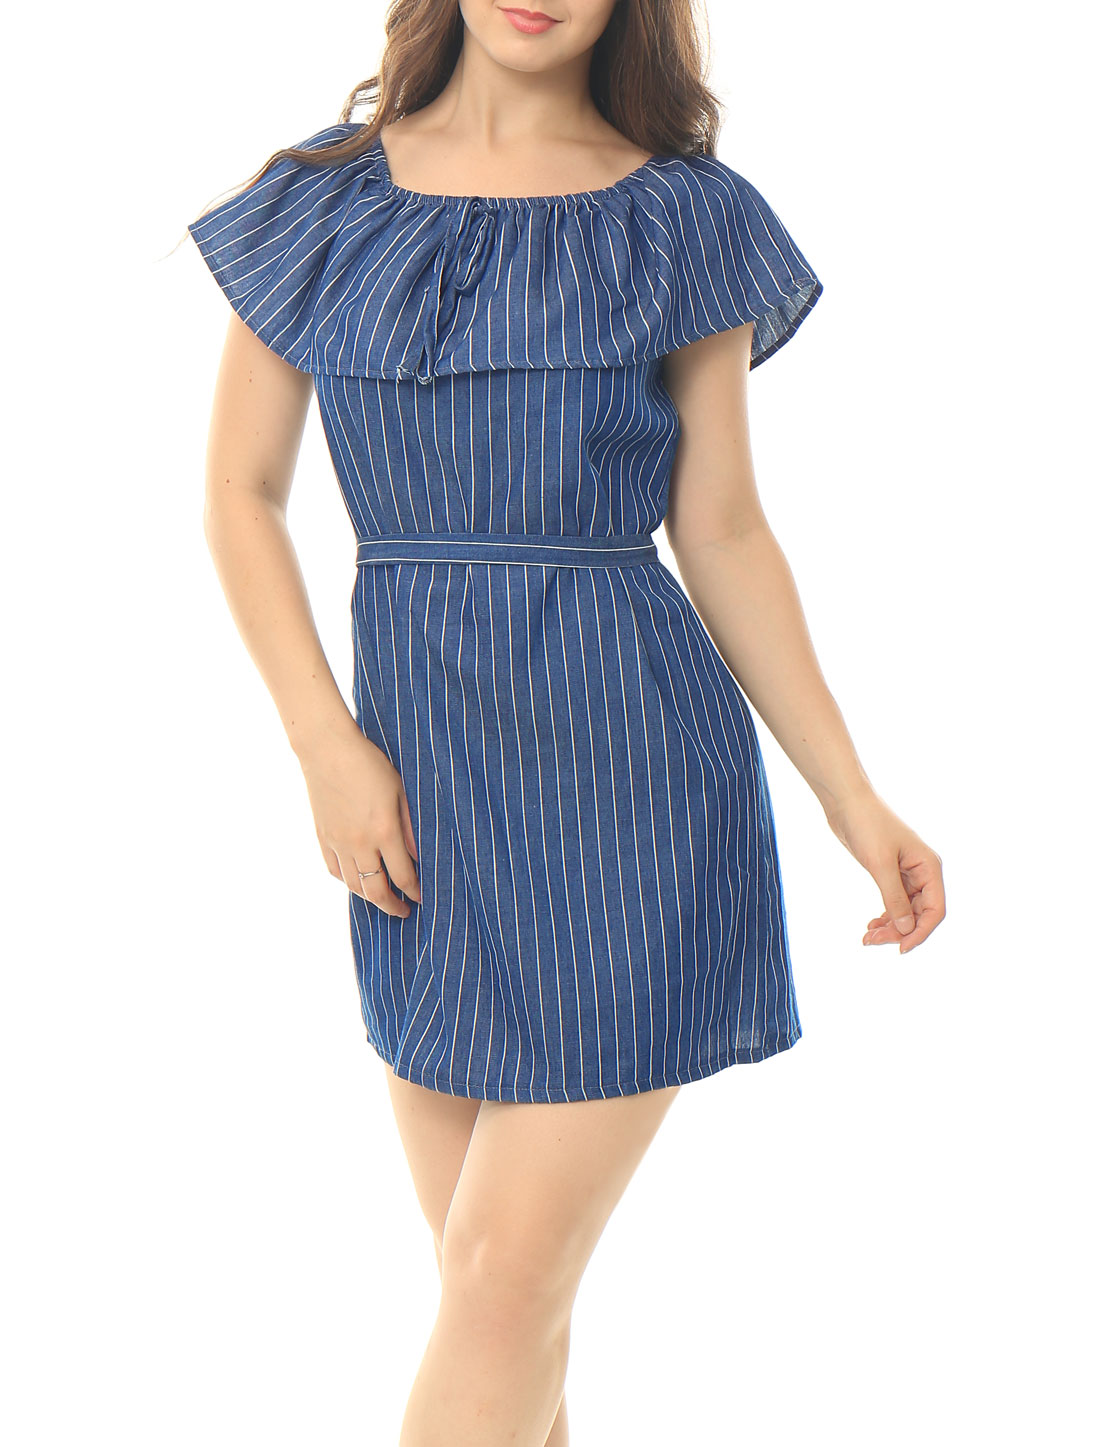 Women Stripes Flouncing Upper Waist String Dress Blue S